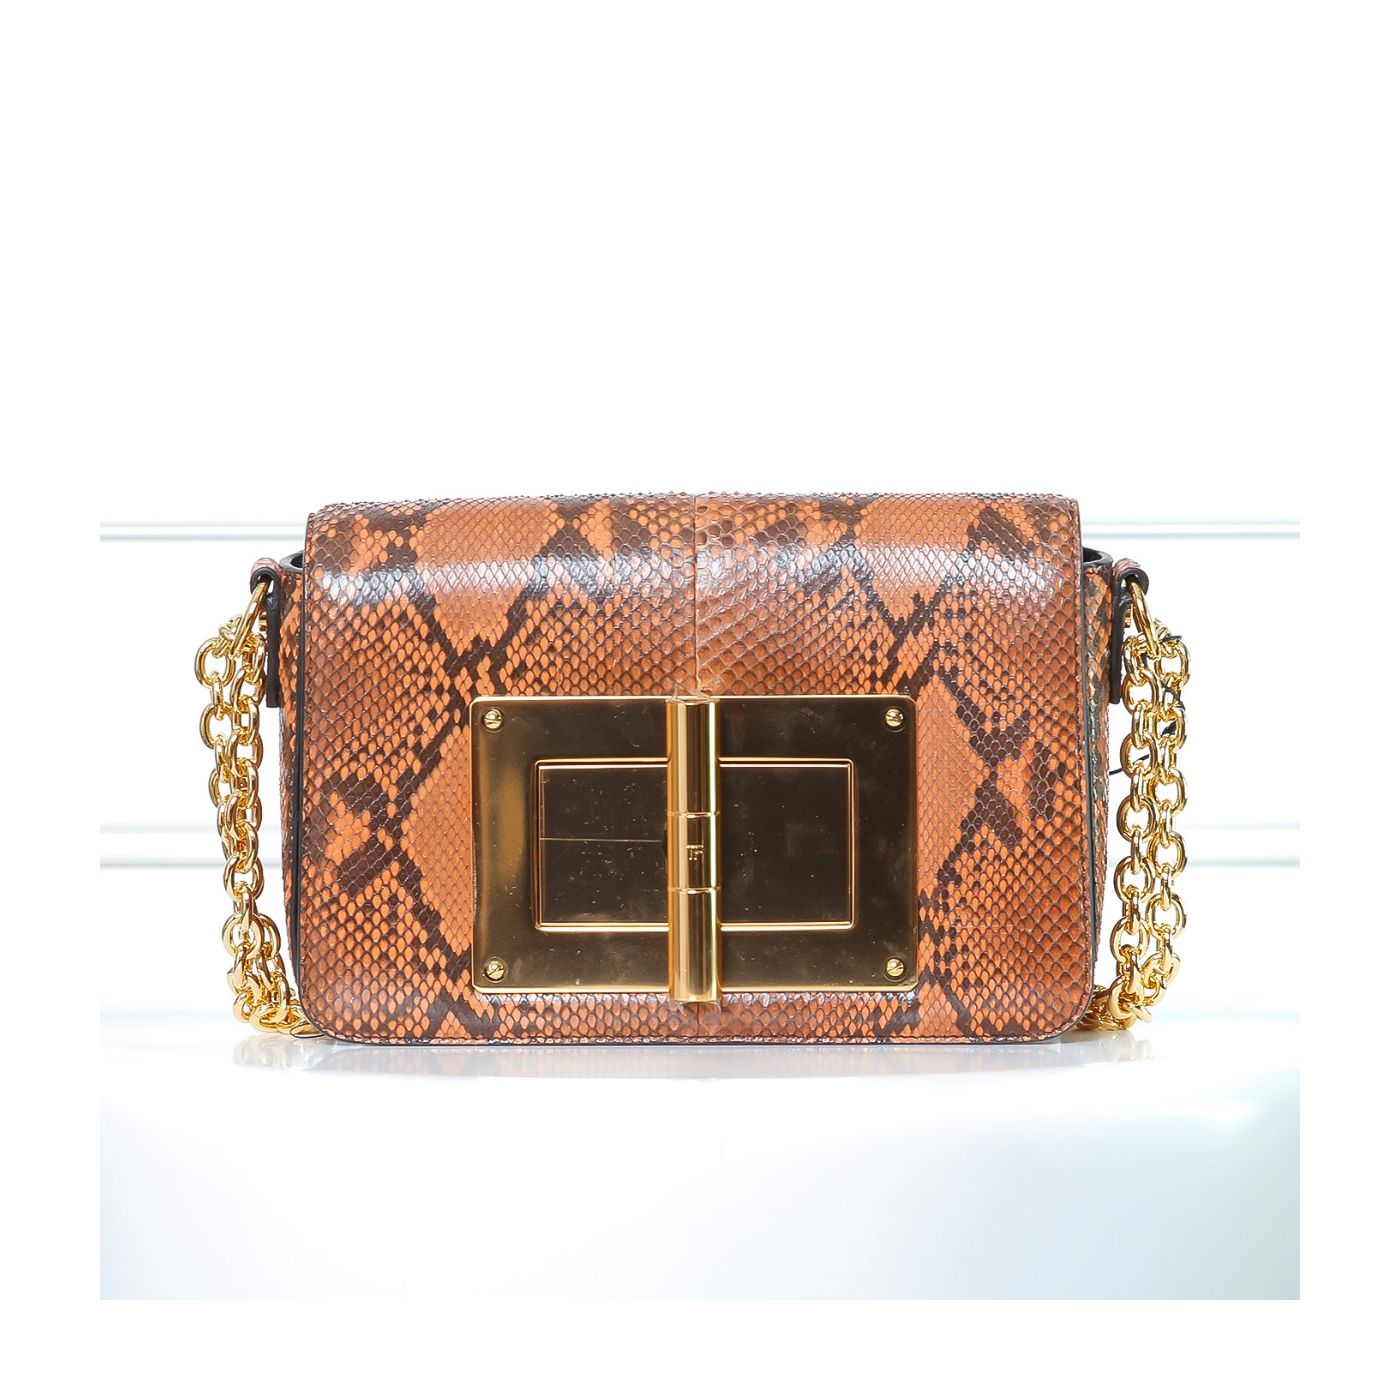 Tom Ford Dark Orange Python Natalia Flap Bag